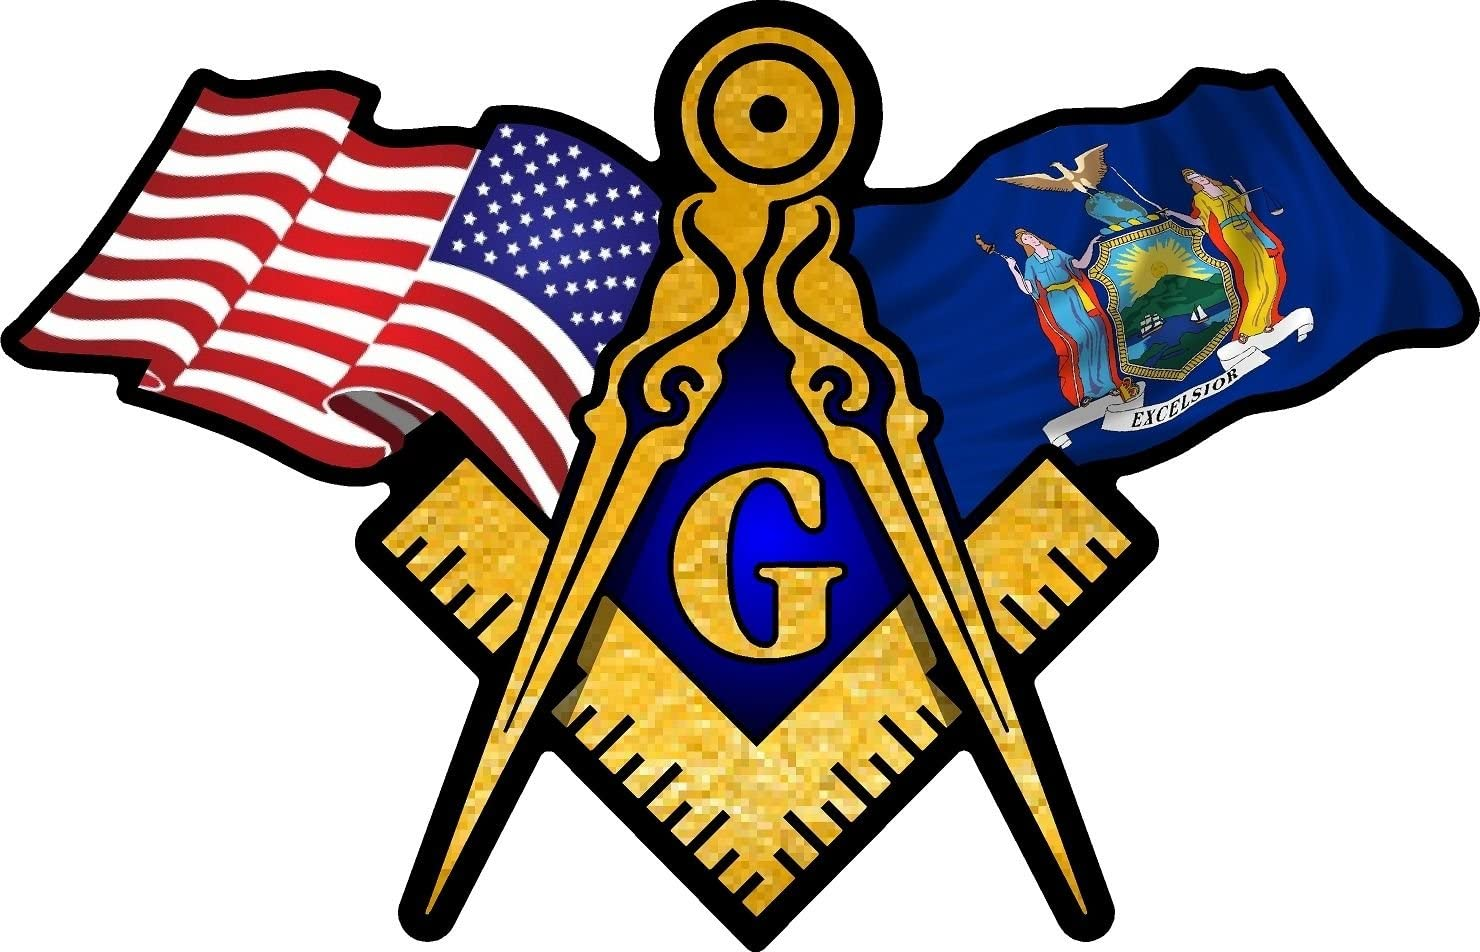 """ProSticker 067 (One) 3"""" X 5"""" Masonic Series American & New York Flags Compass Square Decal Sticker"""